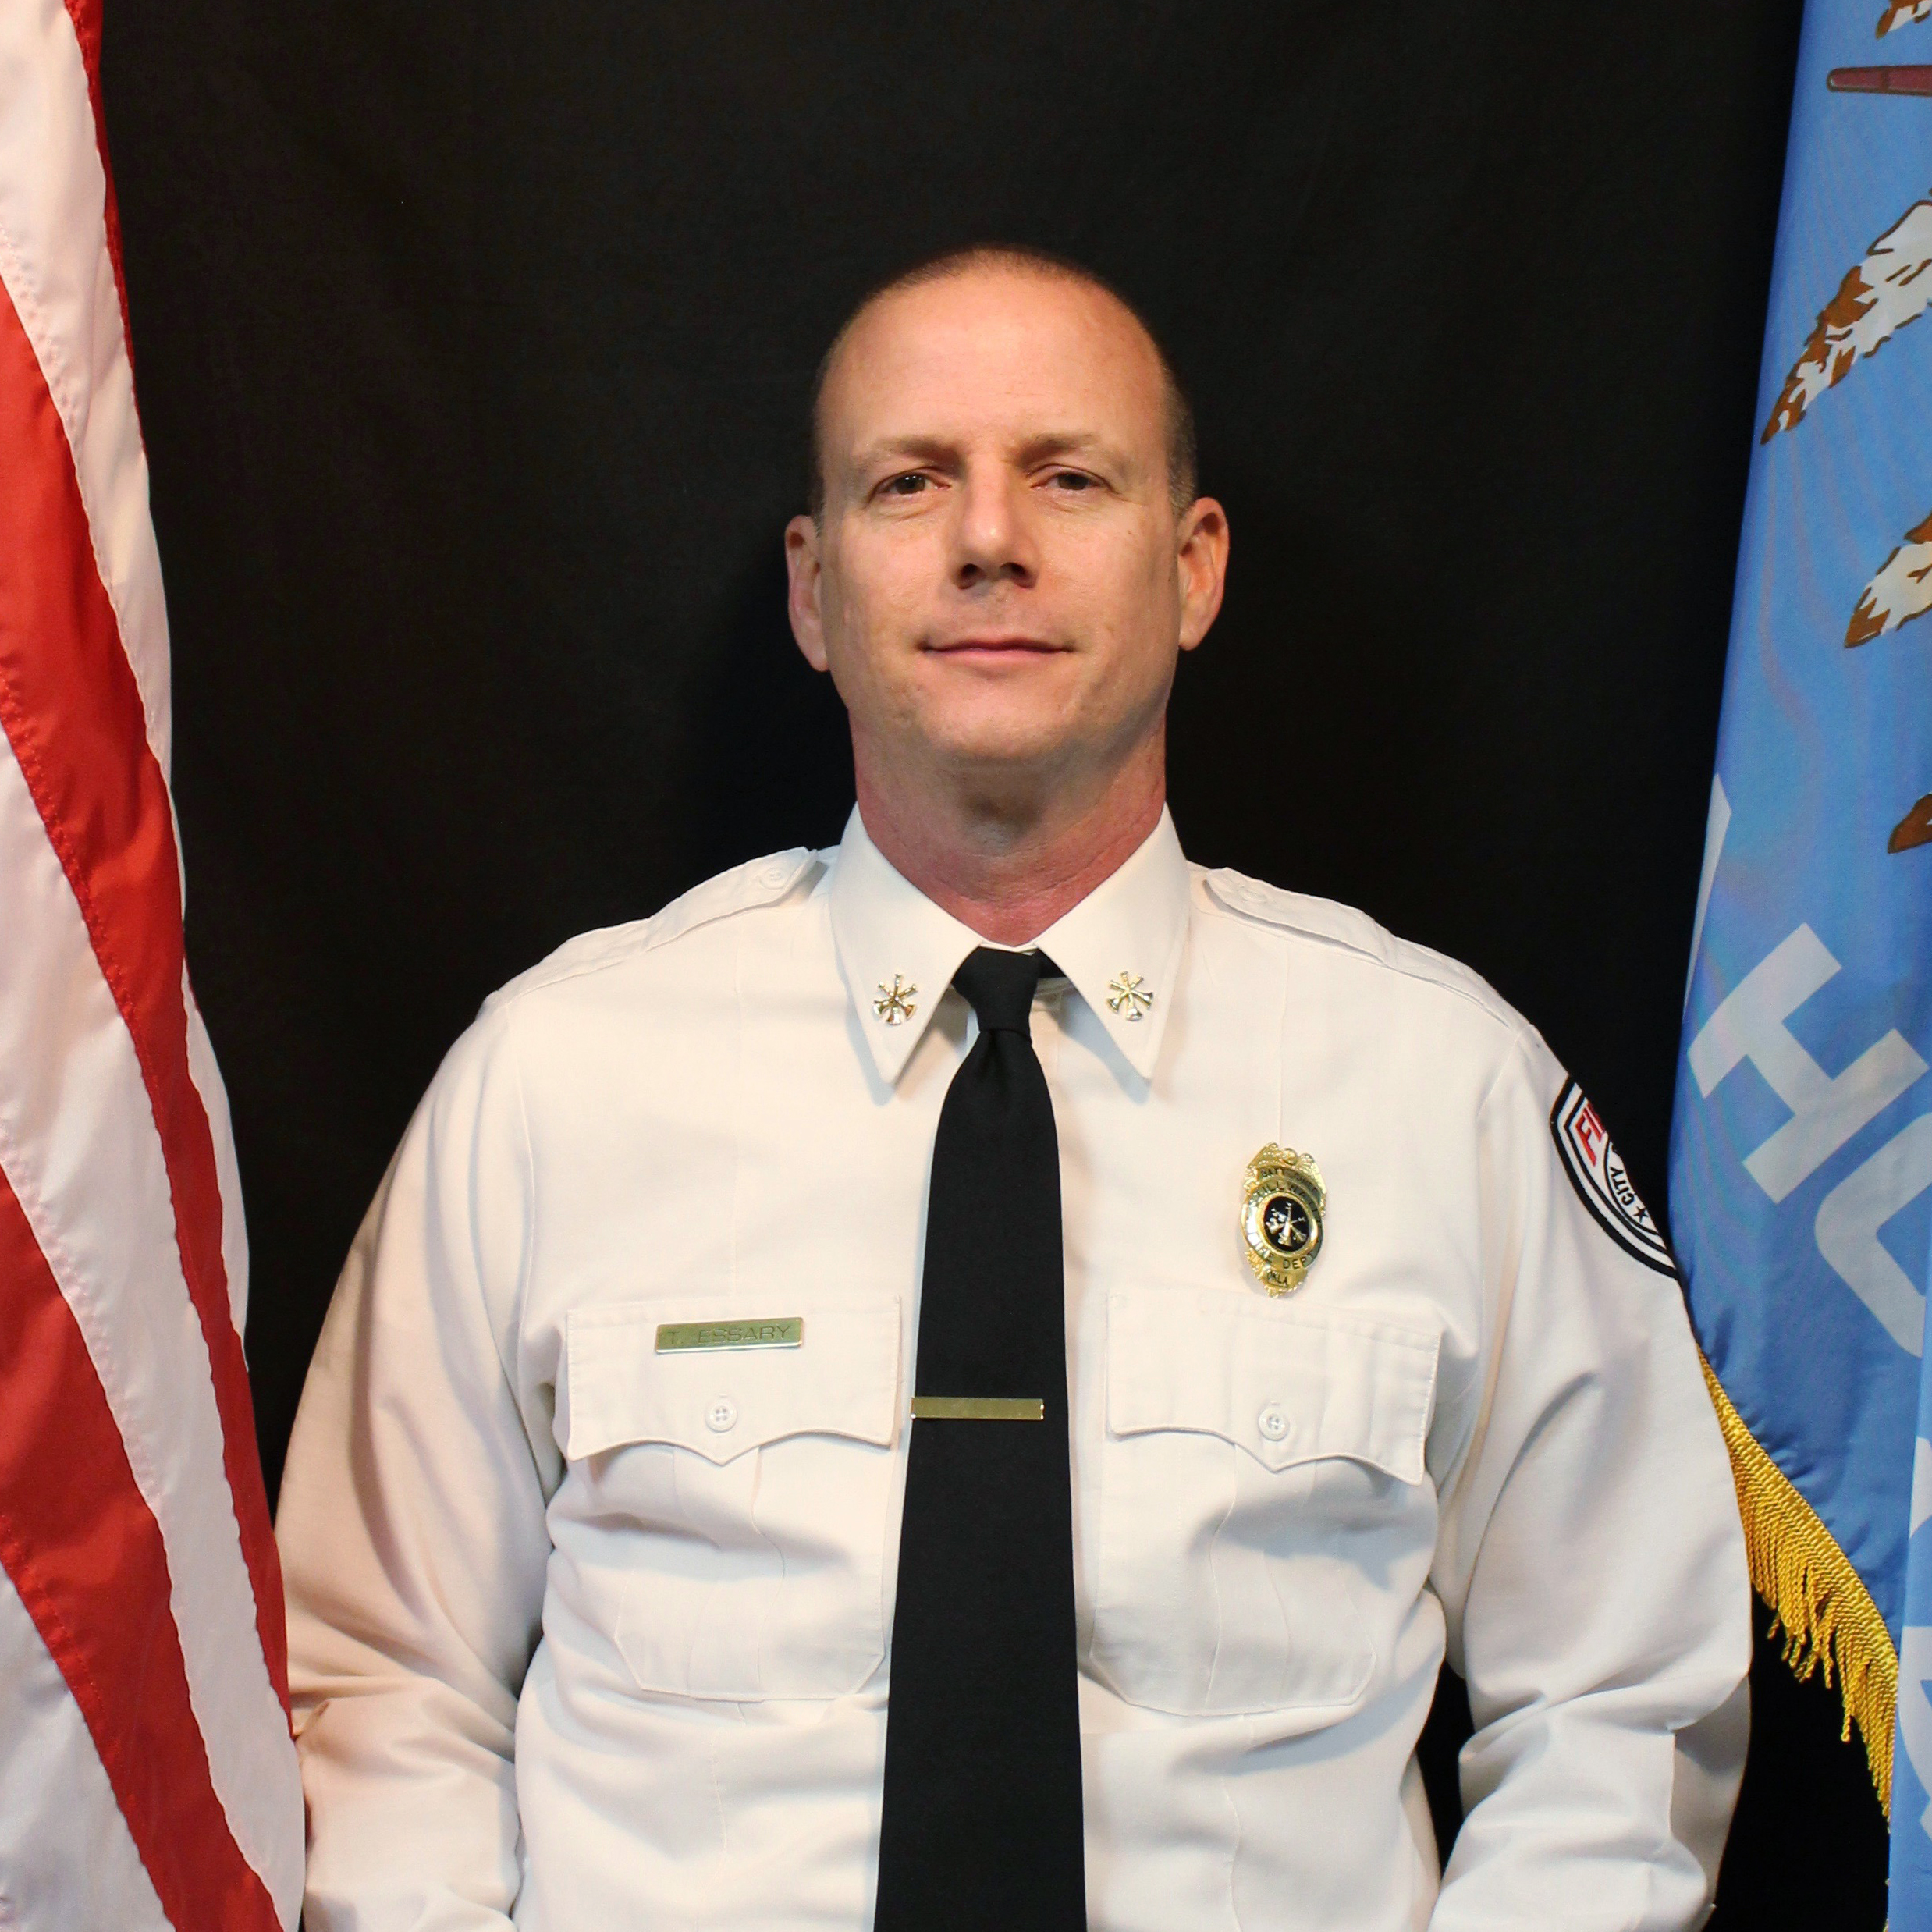 Photo of C. Shift Battalion Chief Terry Essary